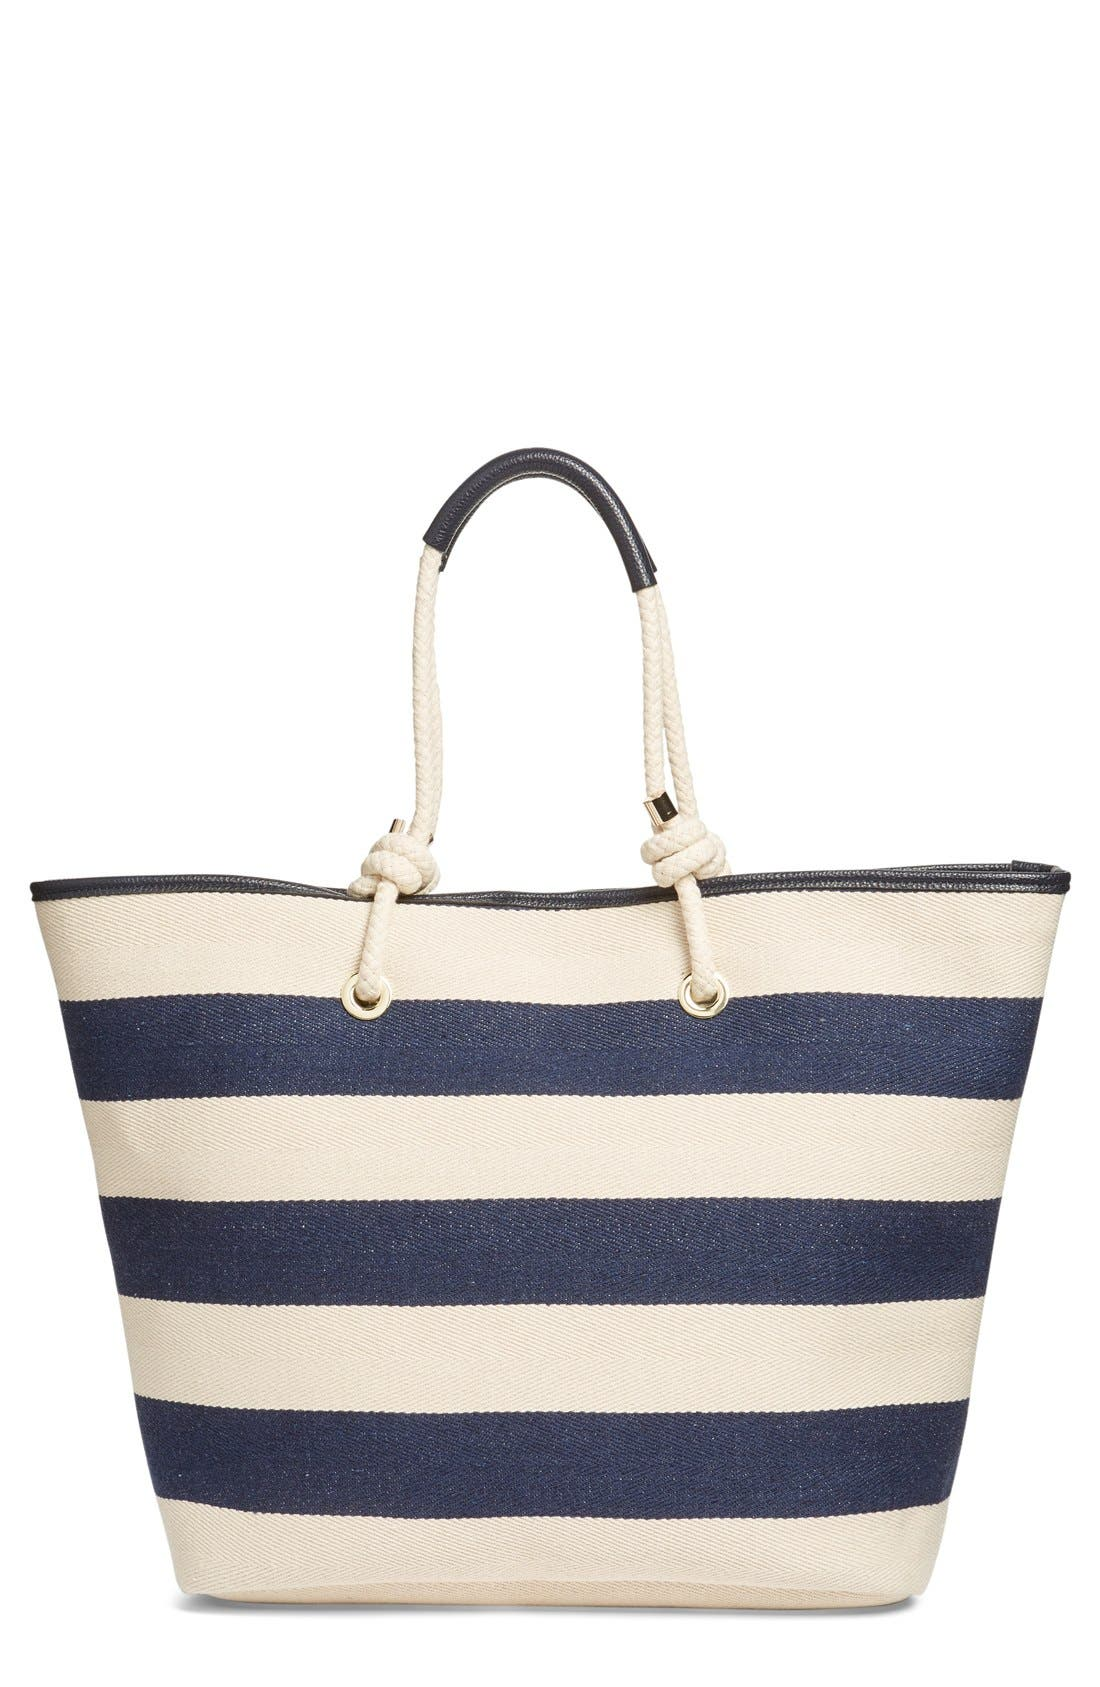 Alternate Image 1 Selected - Phase 3 Rope Handle Canvas Tote